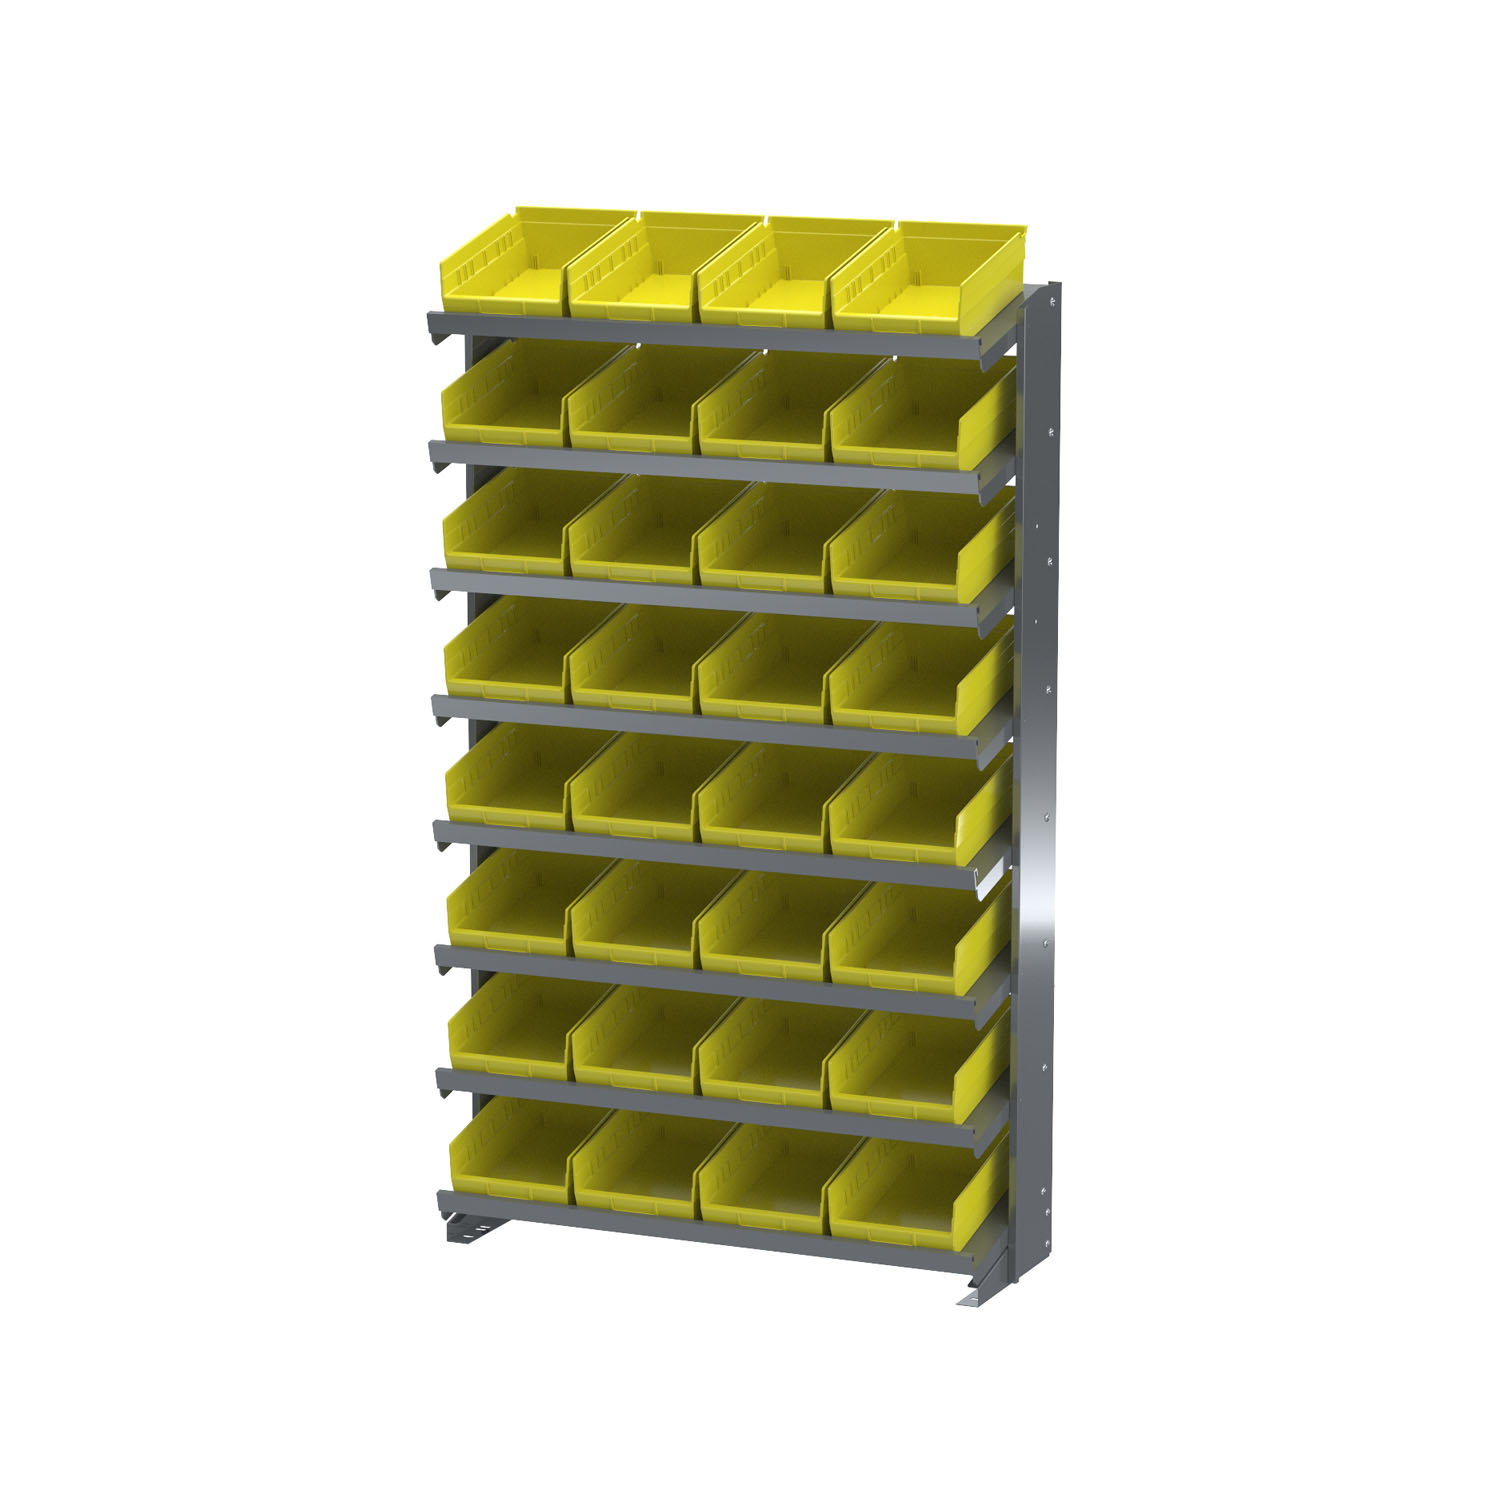 "Akro-Mils 12"" One Sided Storage Pick Rack 32 Shelf Bins, Gray/Yellow"